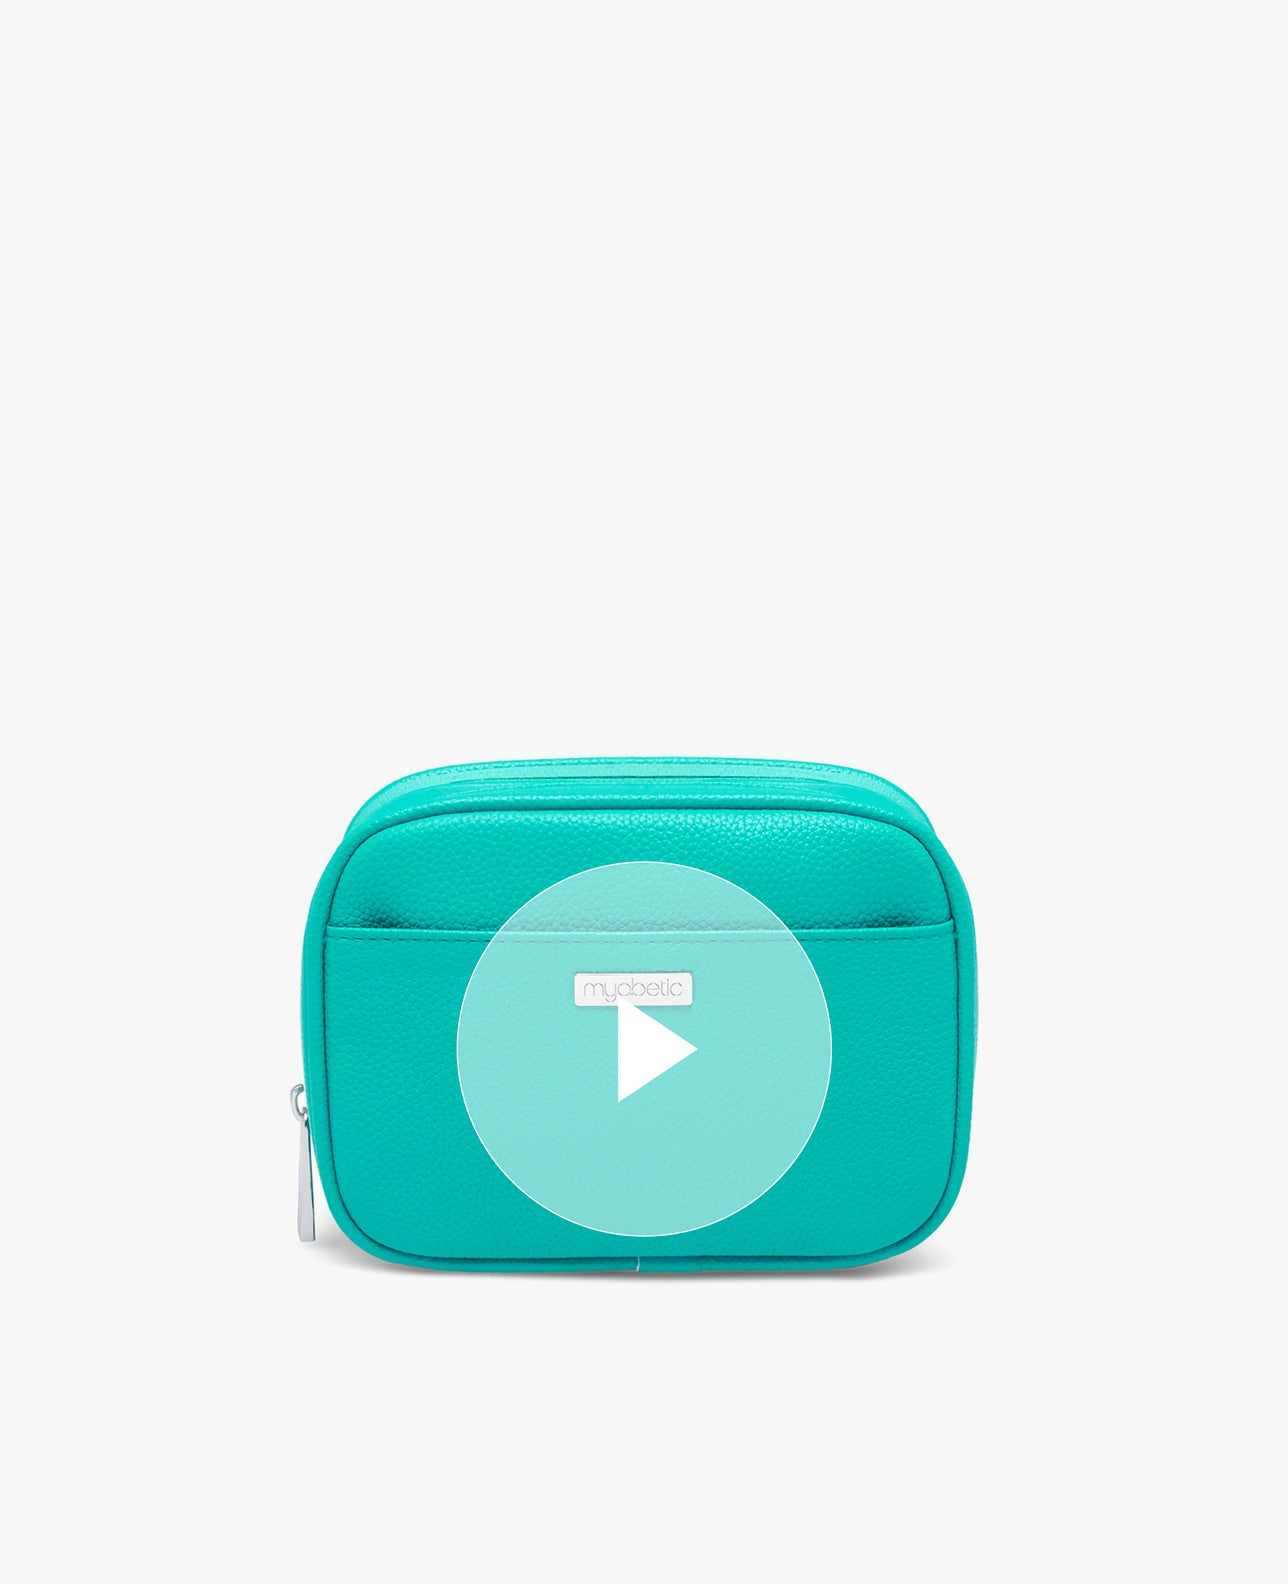 color:turquoise green  https://youtube.com/embed/1buwCENTHw4